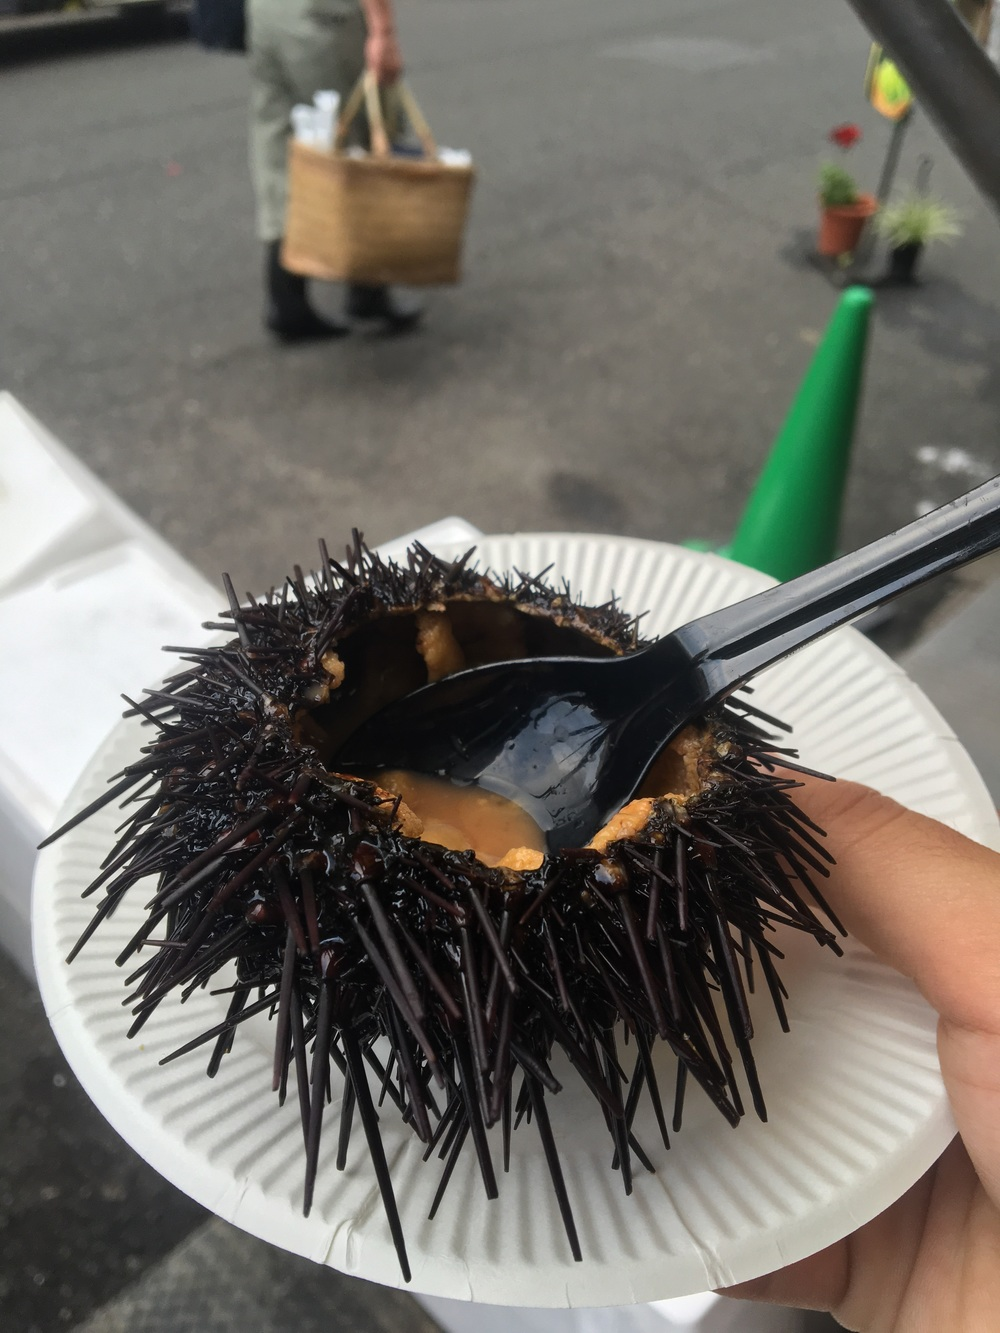 Street sea urchin. Yum.